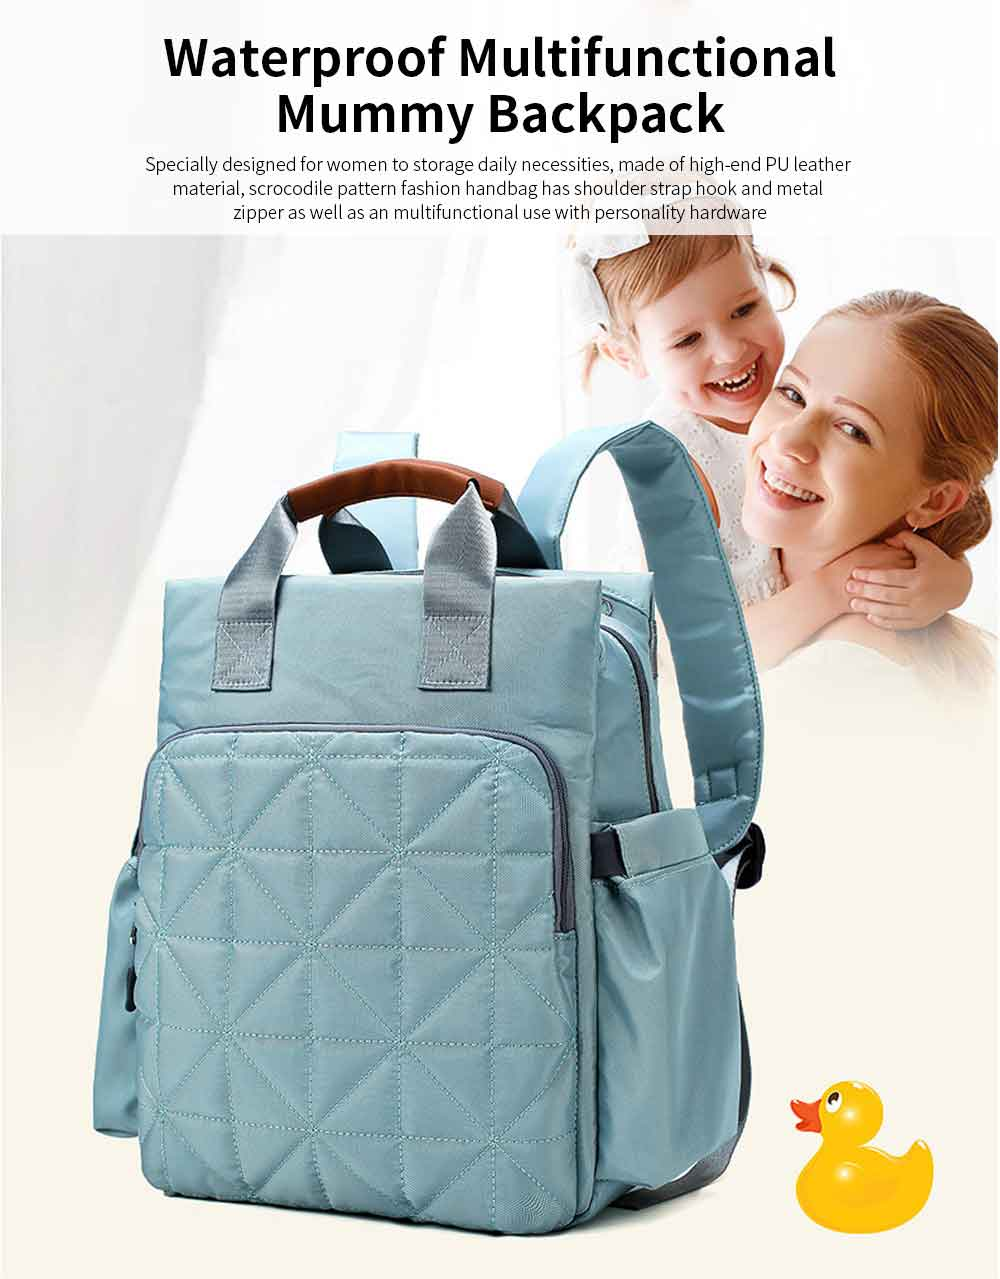 Waterproof Multi-functional Mummy Backpack with Large Capacity 0